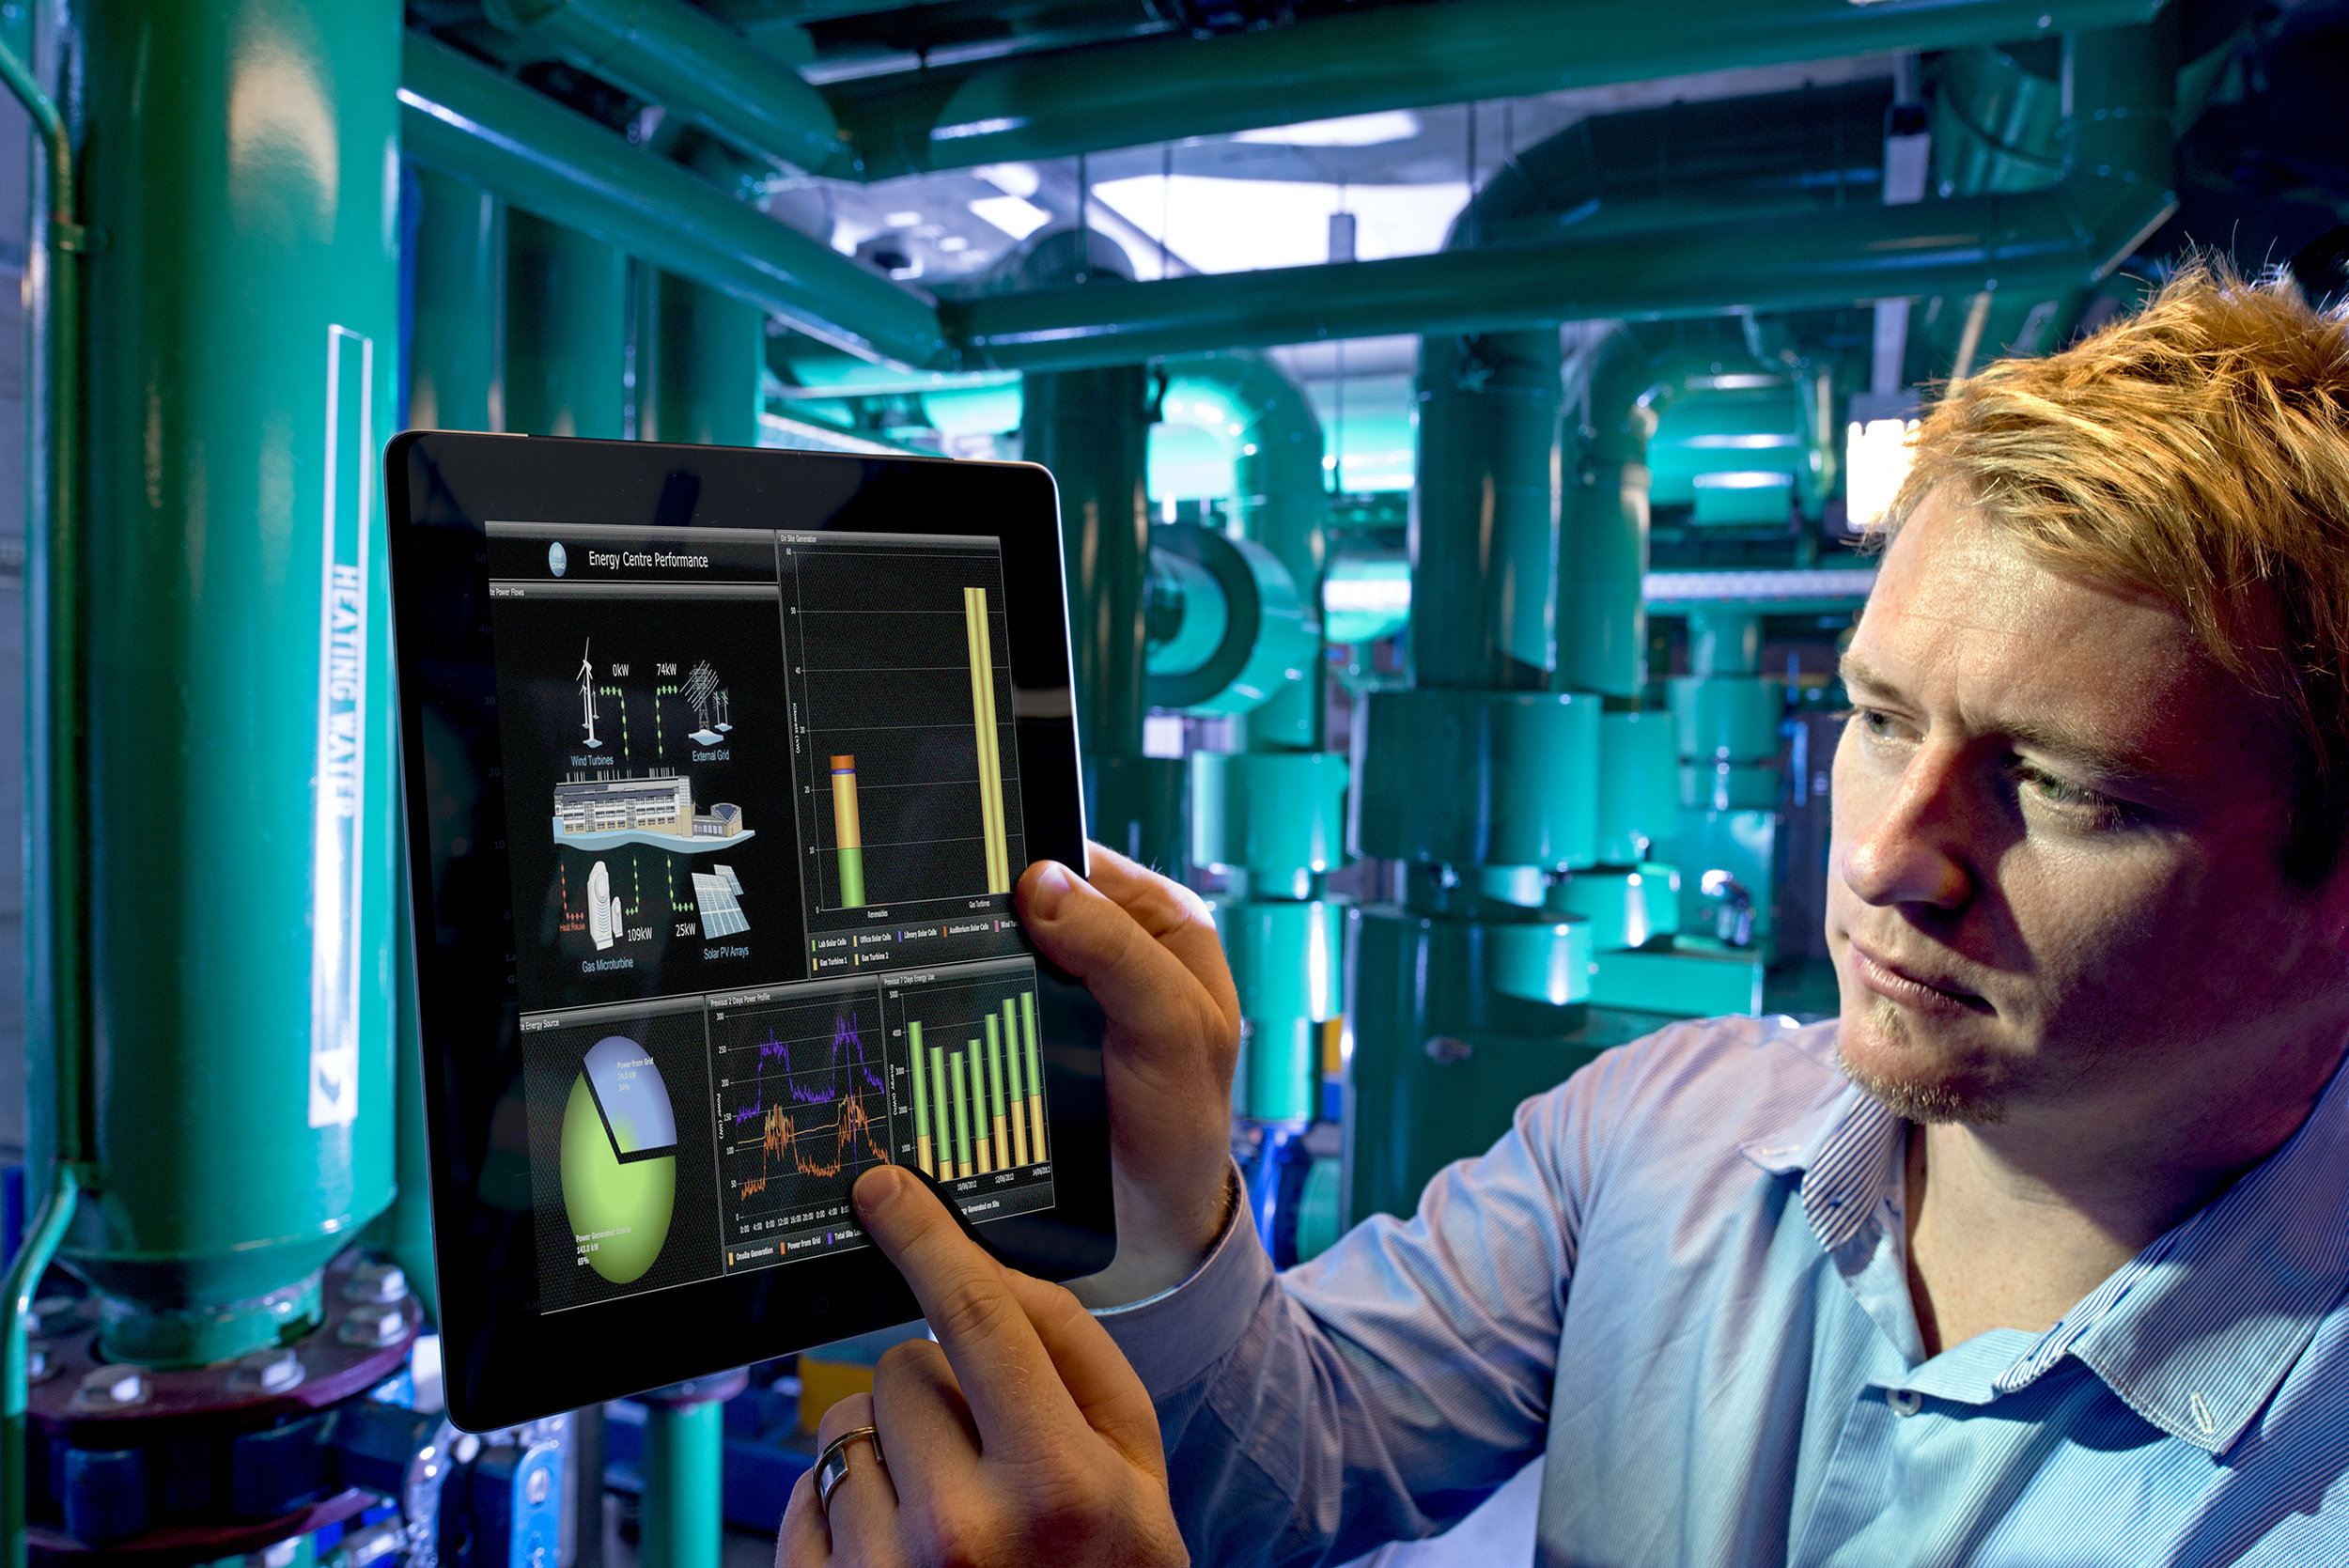 CSIRO_ScienceImage_2041_A_man_looking_at_a_tablet_in_an_energy_facility.jpg